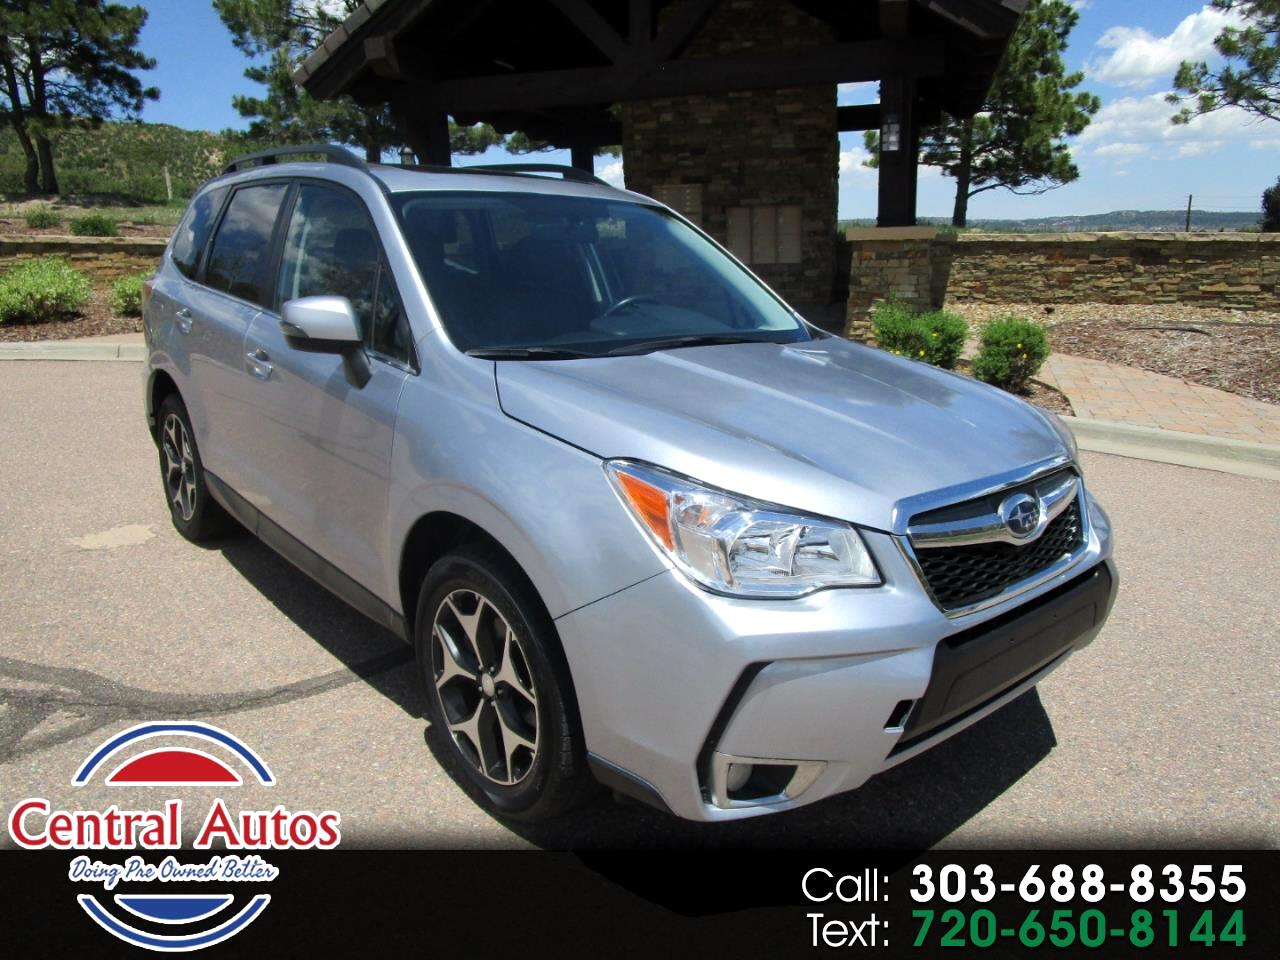 2014 Subaru Forester 4dr Auto 2.0XT Touring